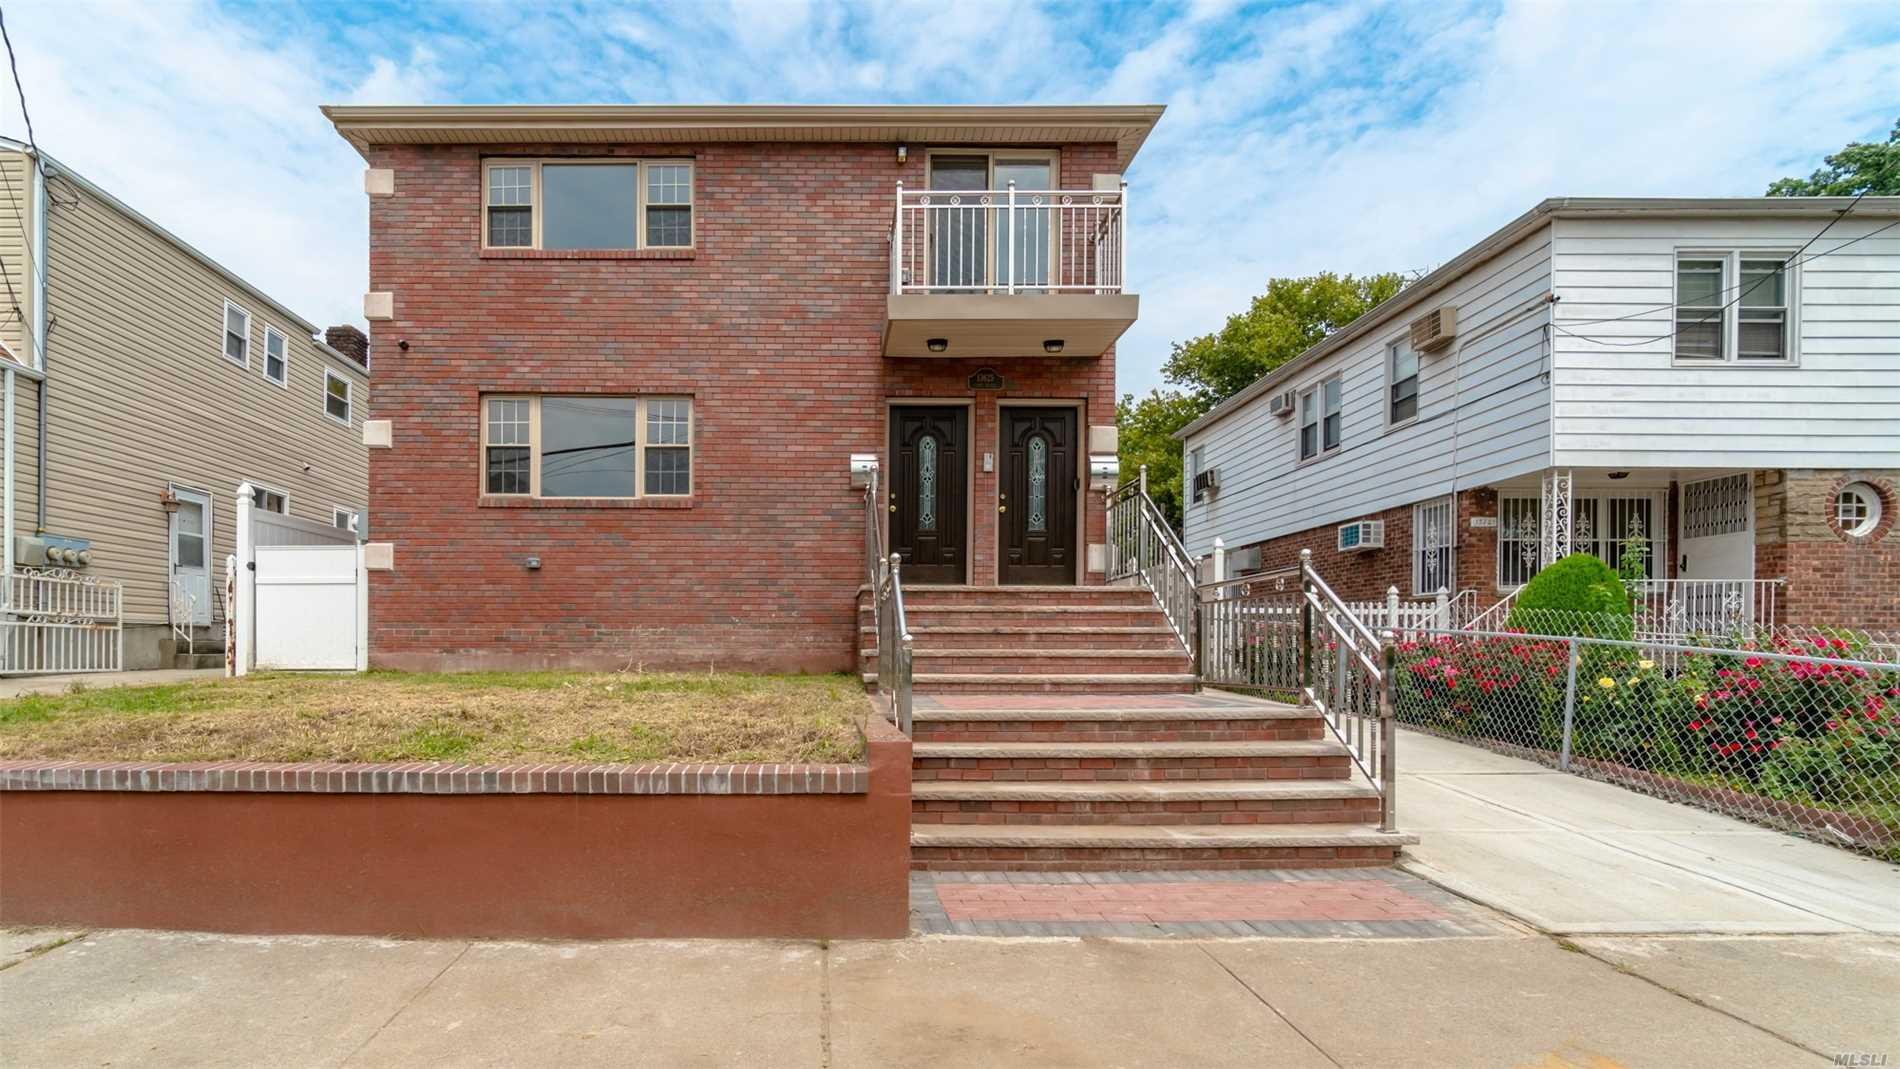 Brand New Brick 2 Family House Close To Main Street! Each Unit Has 3 Bedrooms And 2 Full Bathrooms. Finished Basement With Separate Entrance And Full Bathroom! Hardwood Floors, Stainless Steel Appliances!